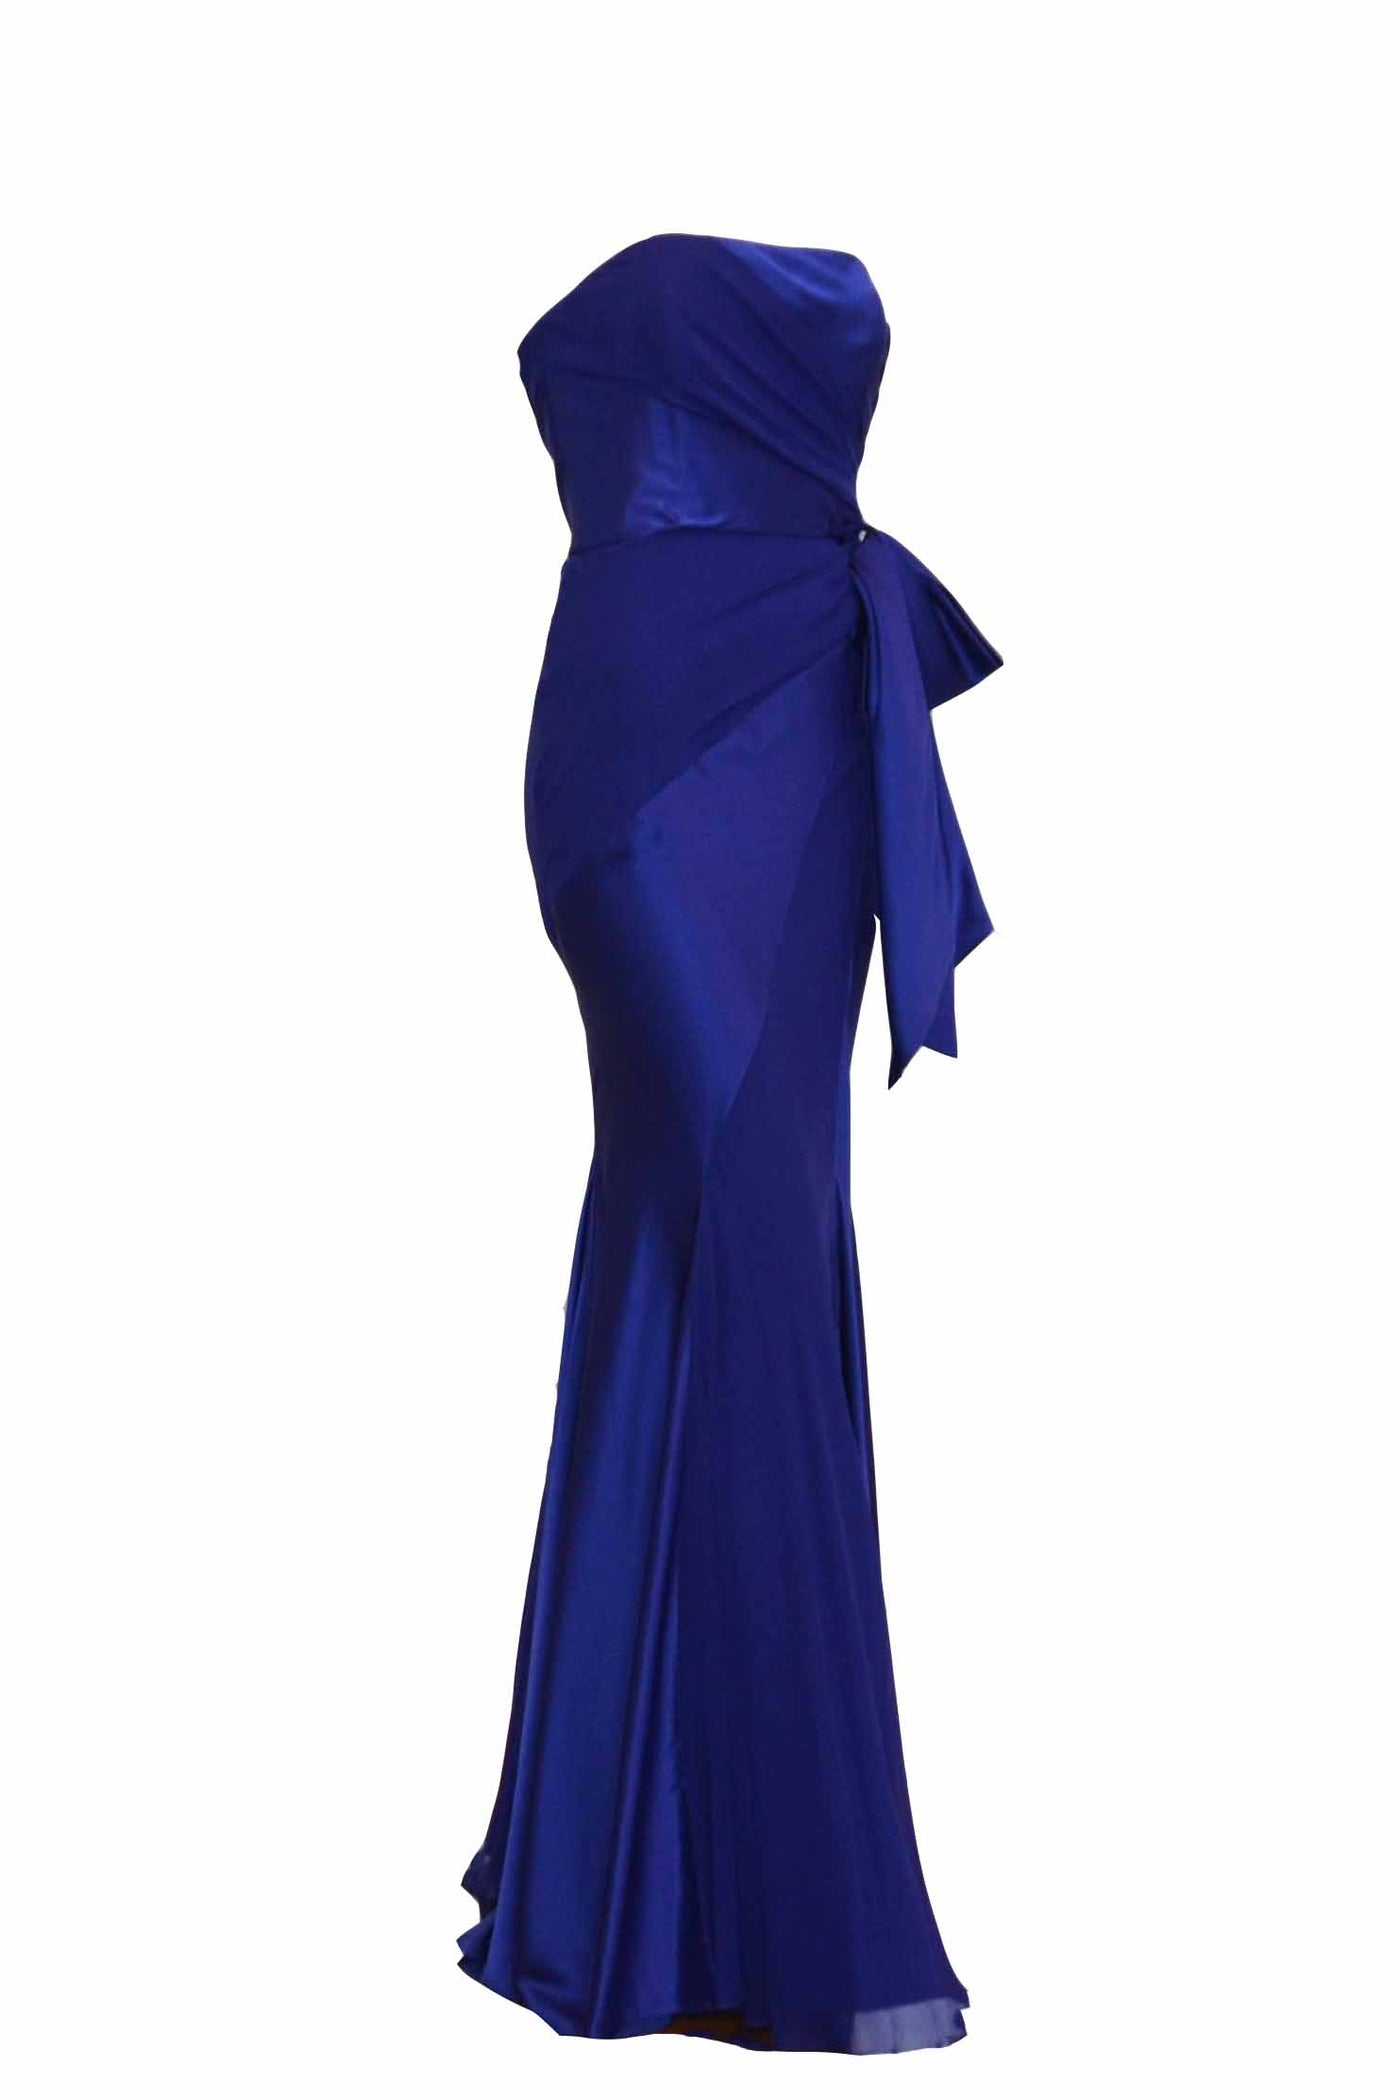 Rent: Melinda Eng - Blue Satin with Bow Dress